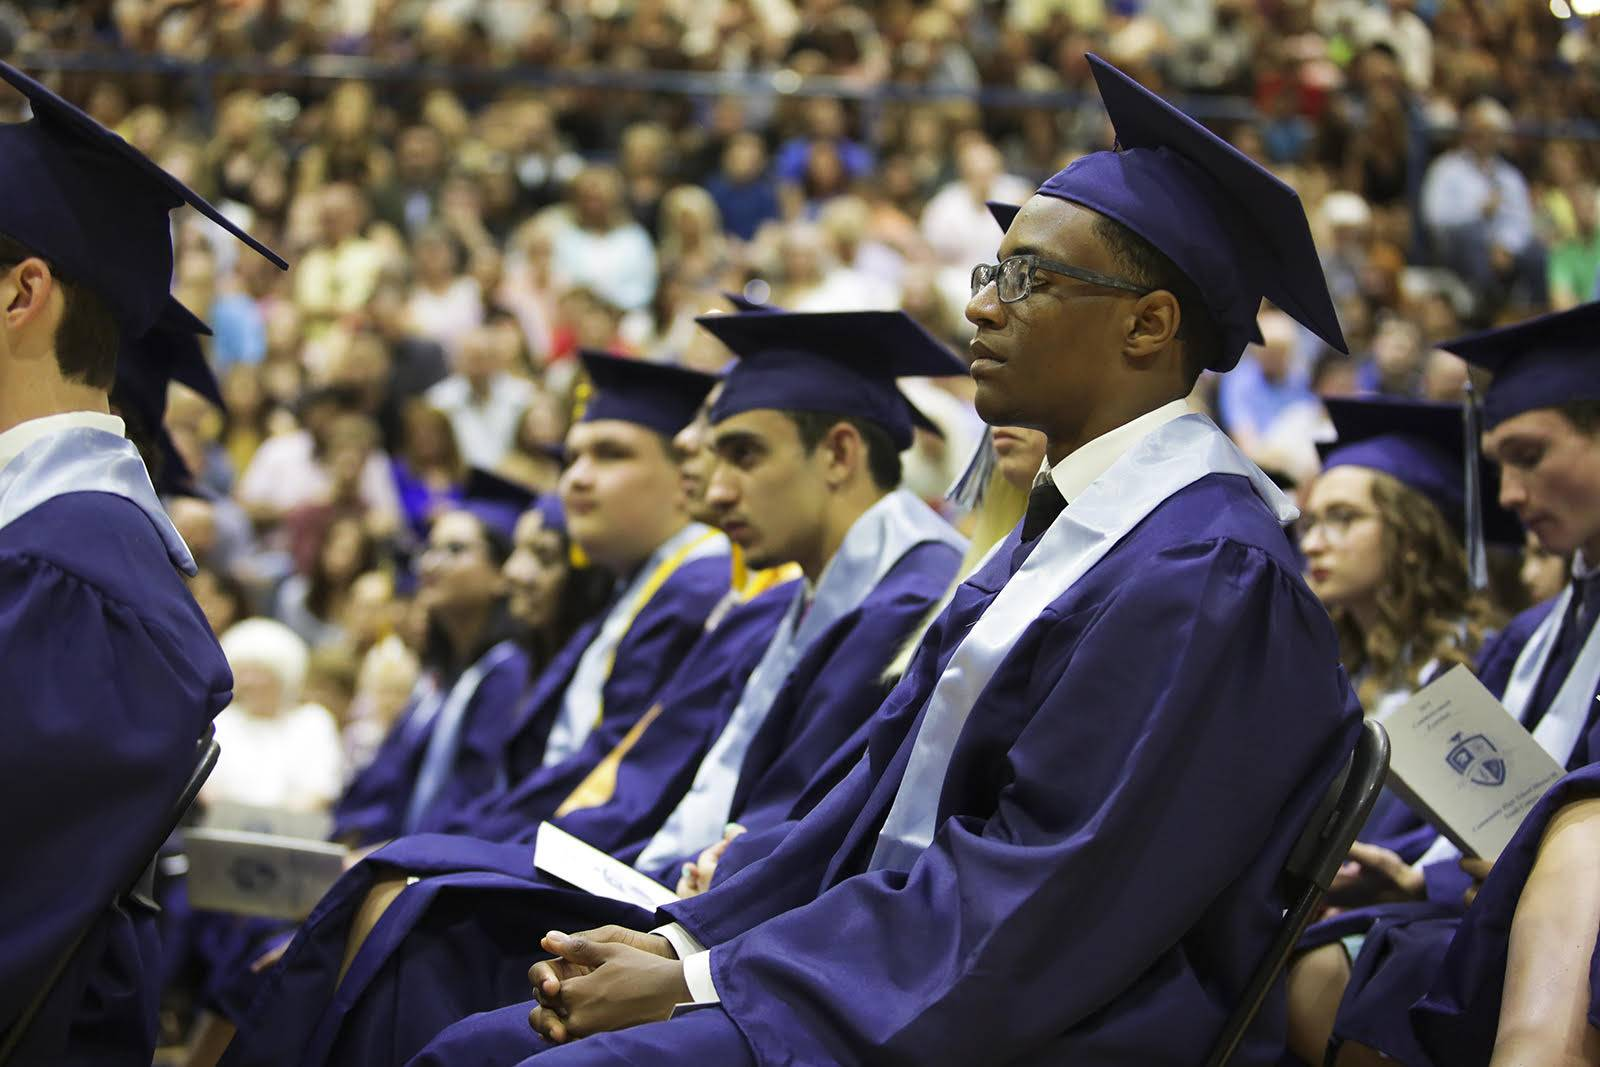 Graduates listen to speeches during the Downers Grove South Commencement Ceremony in Downers Grove May 24.